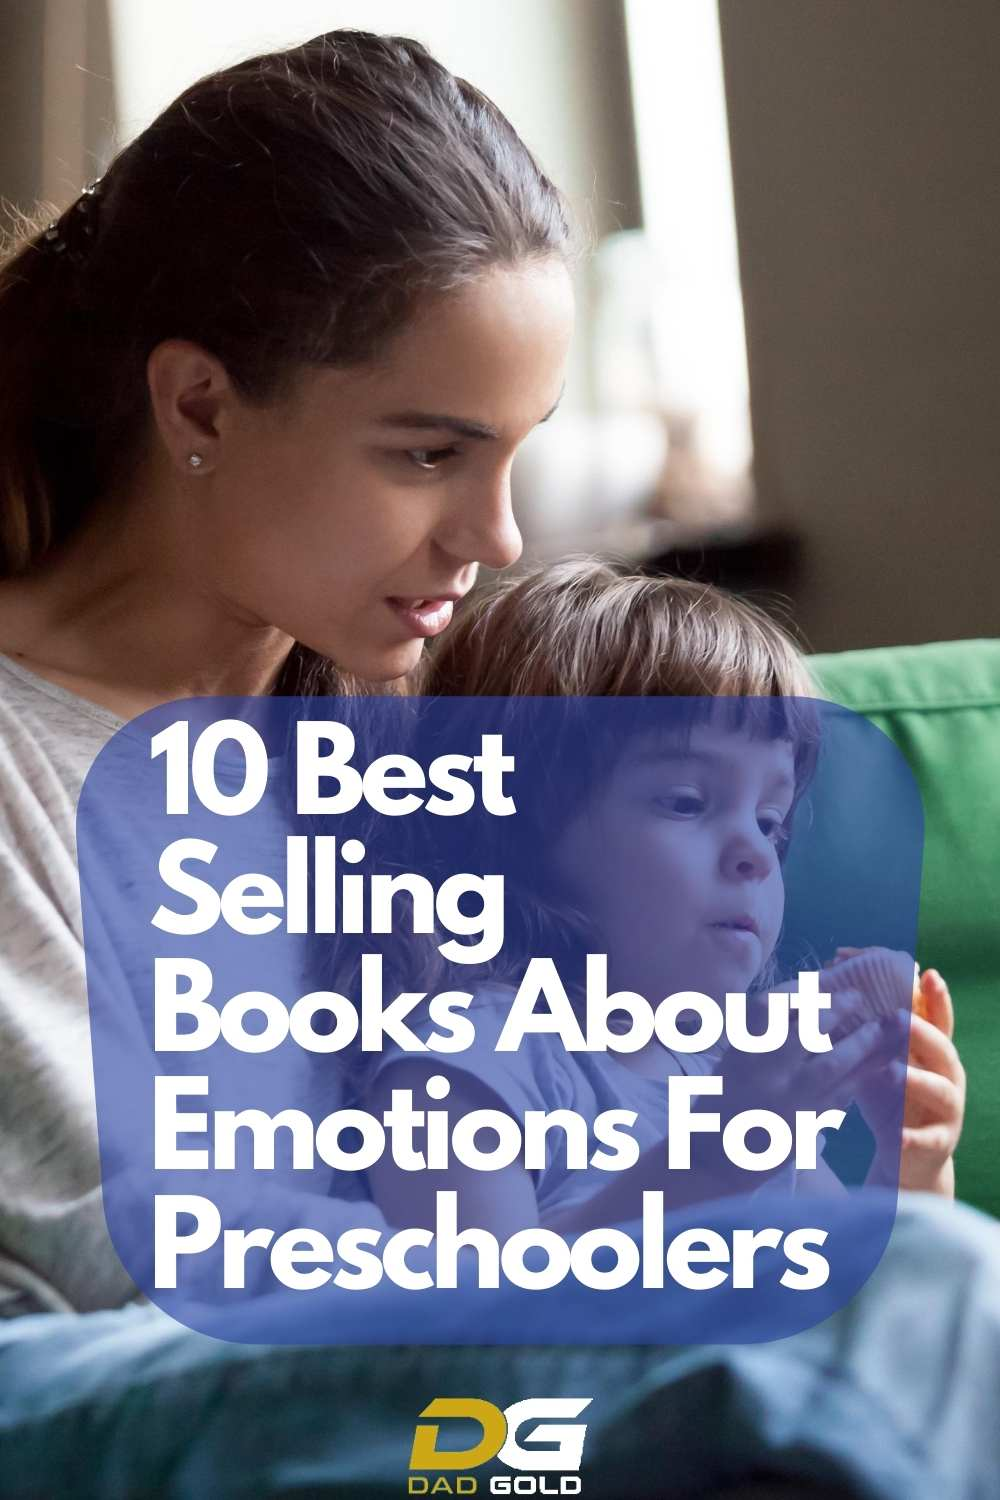 10 Best Selling Books About Emotions For Preschoolers